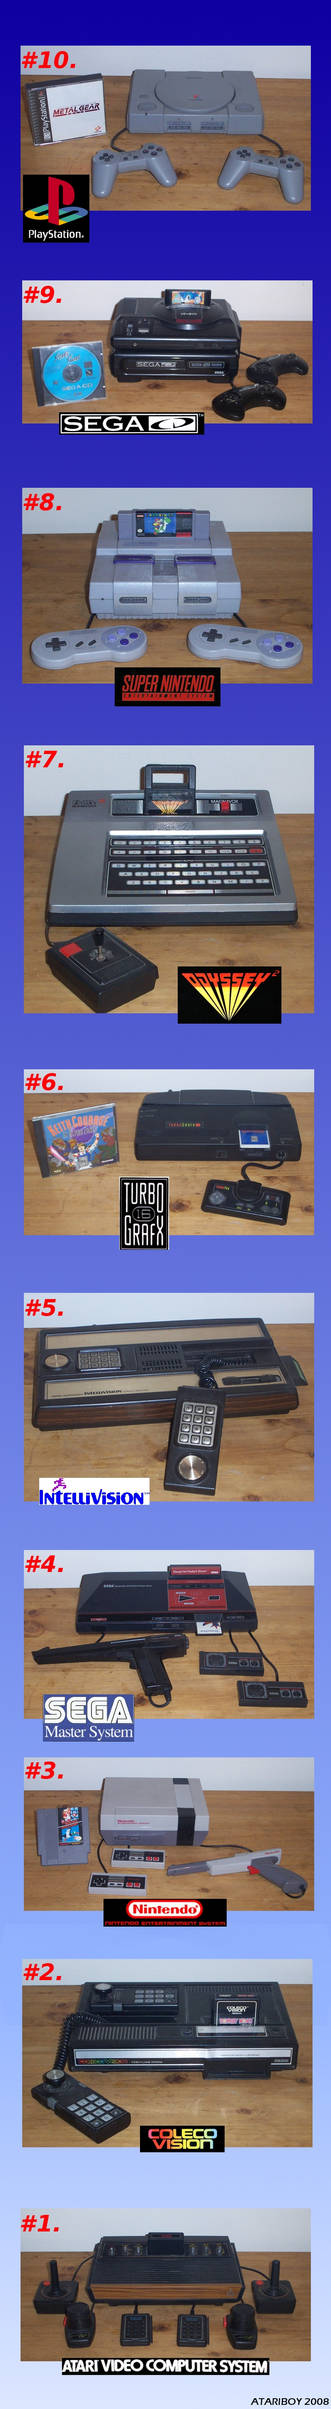 The Top Ten Fave Gaming Systems.